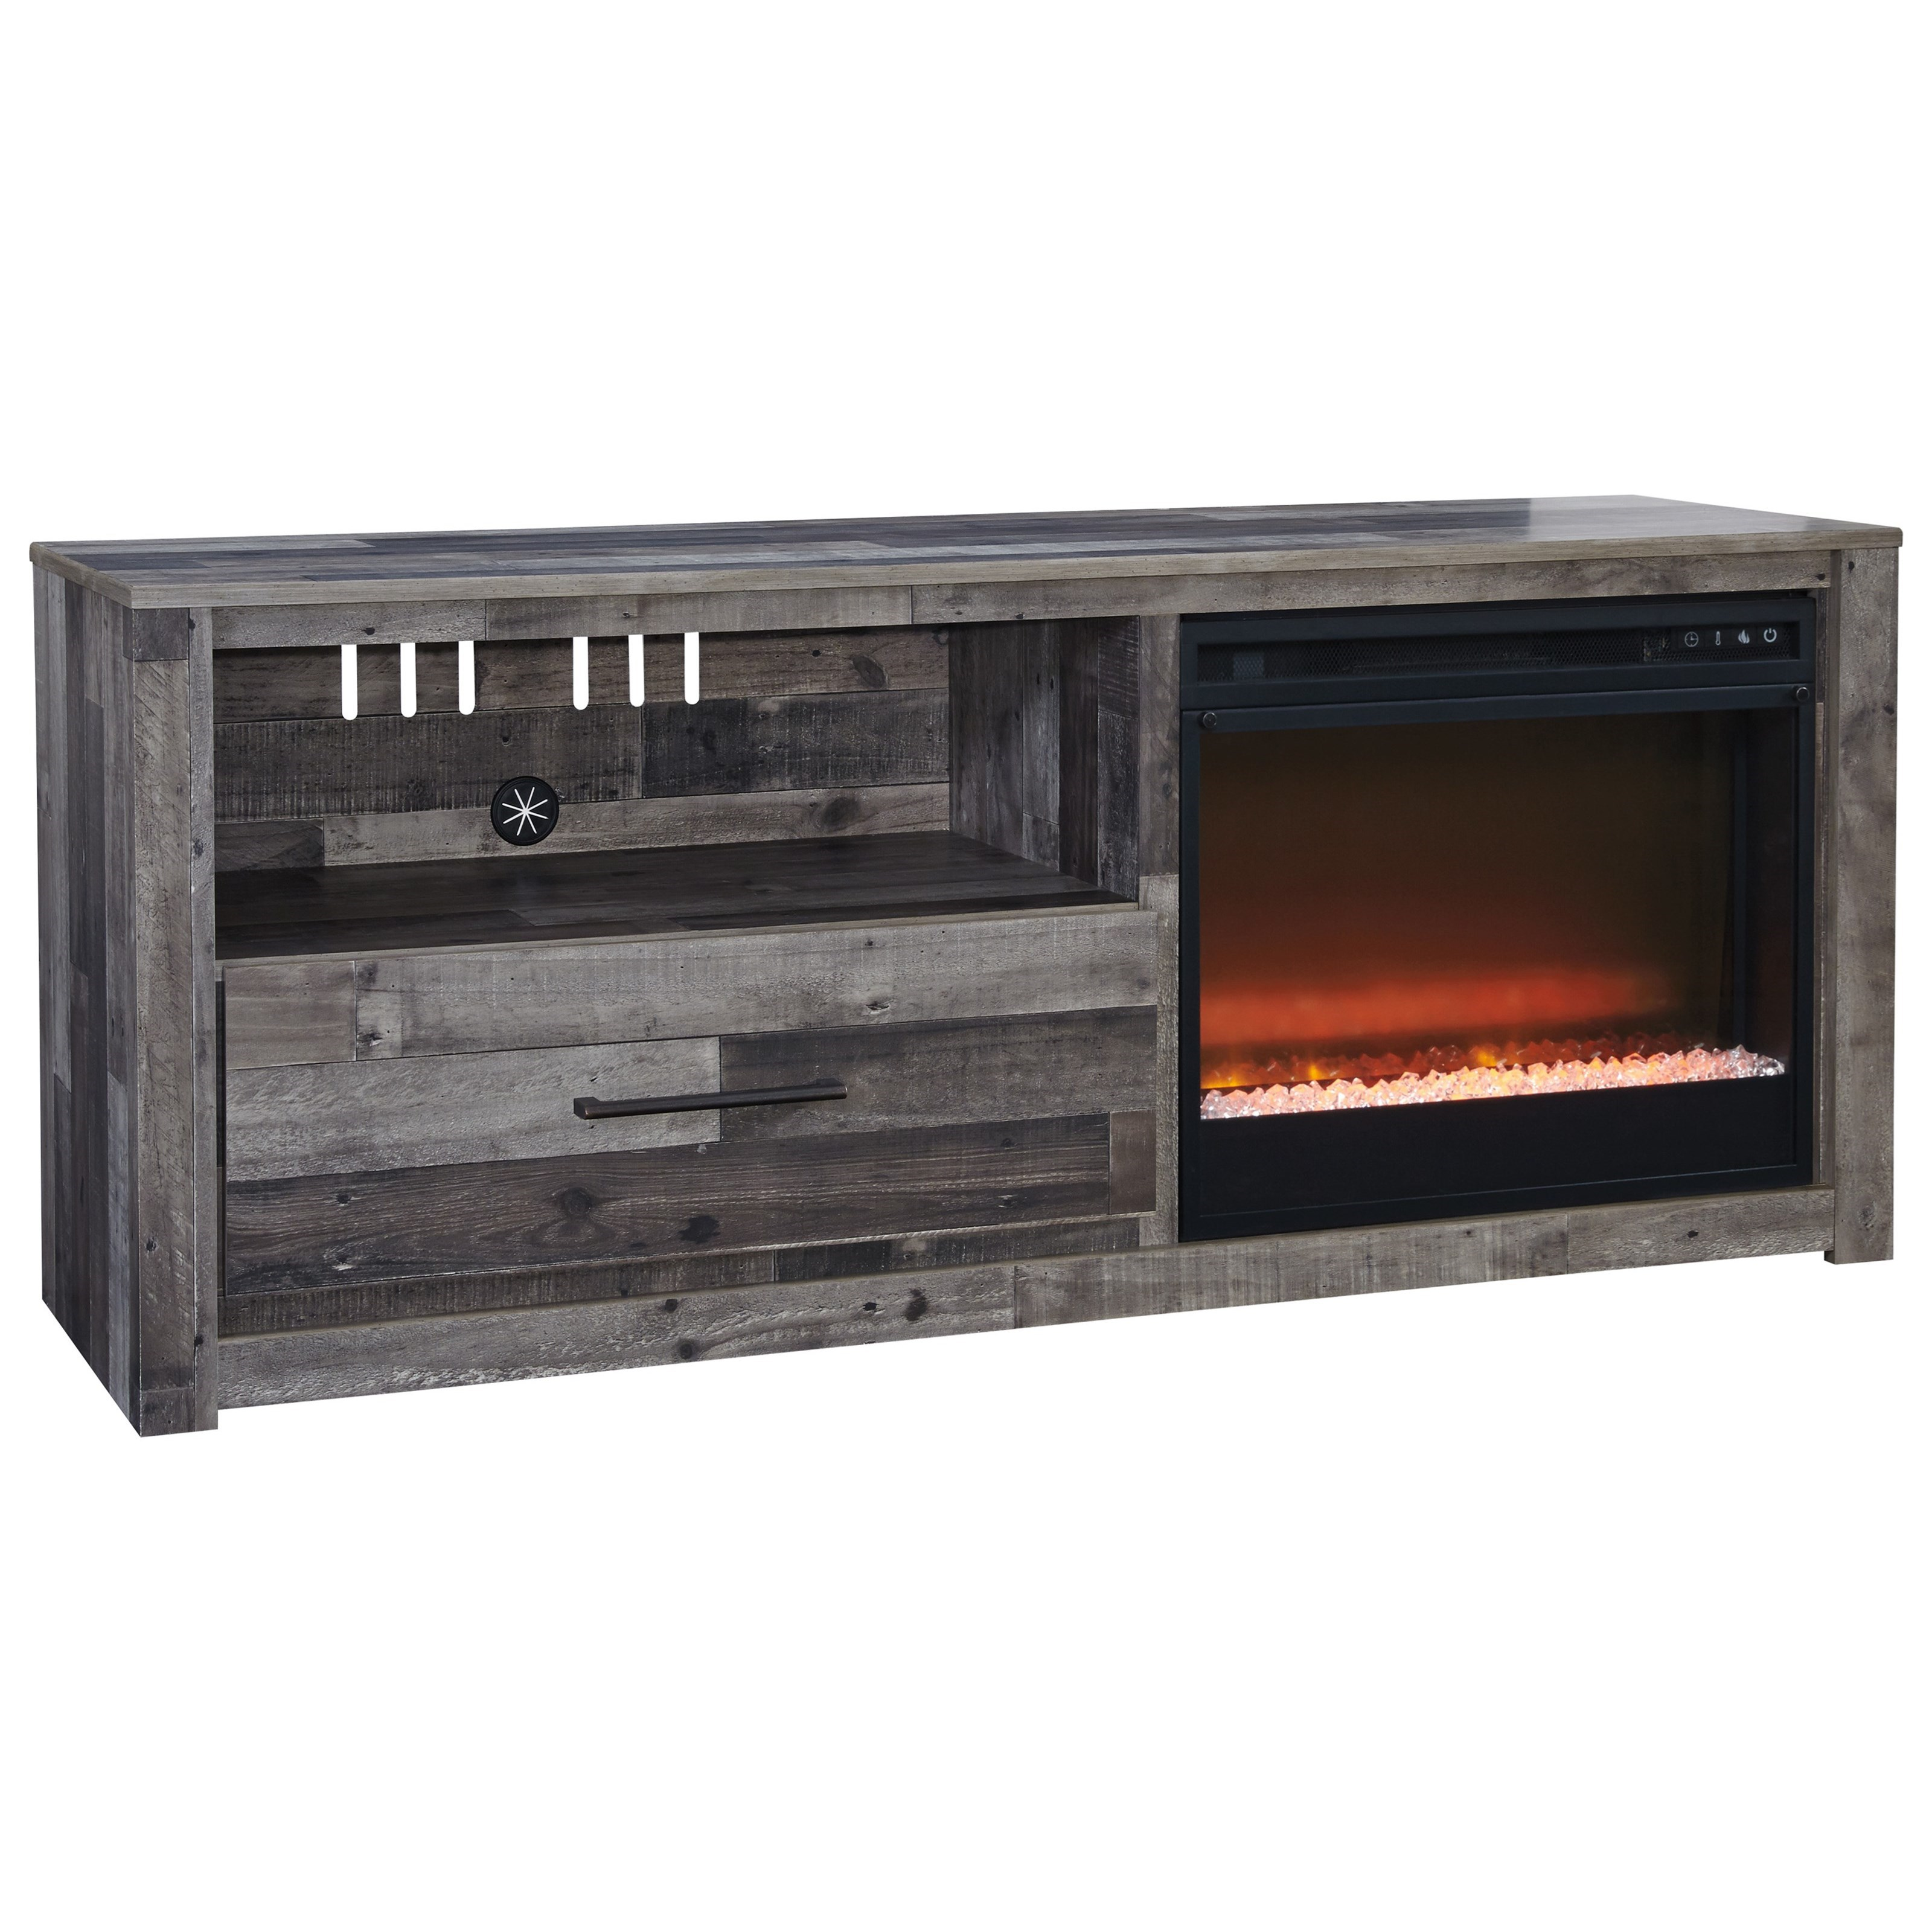 Derekson TV Stand with LED Fireplace by Signature Design by Ashley at Northeast Factory Direct